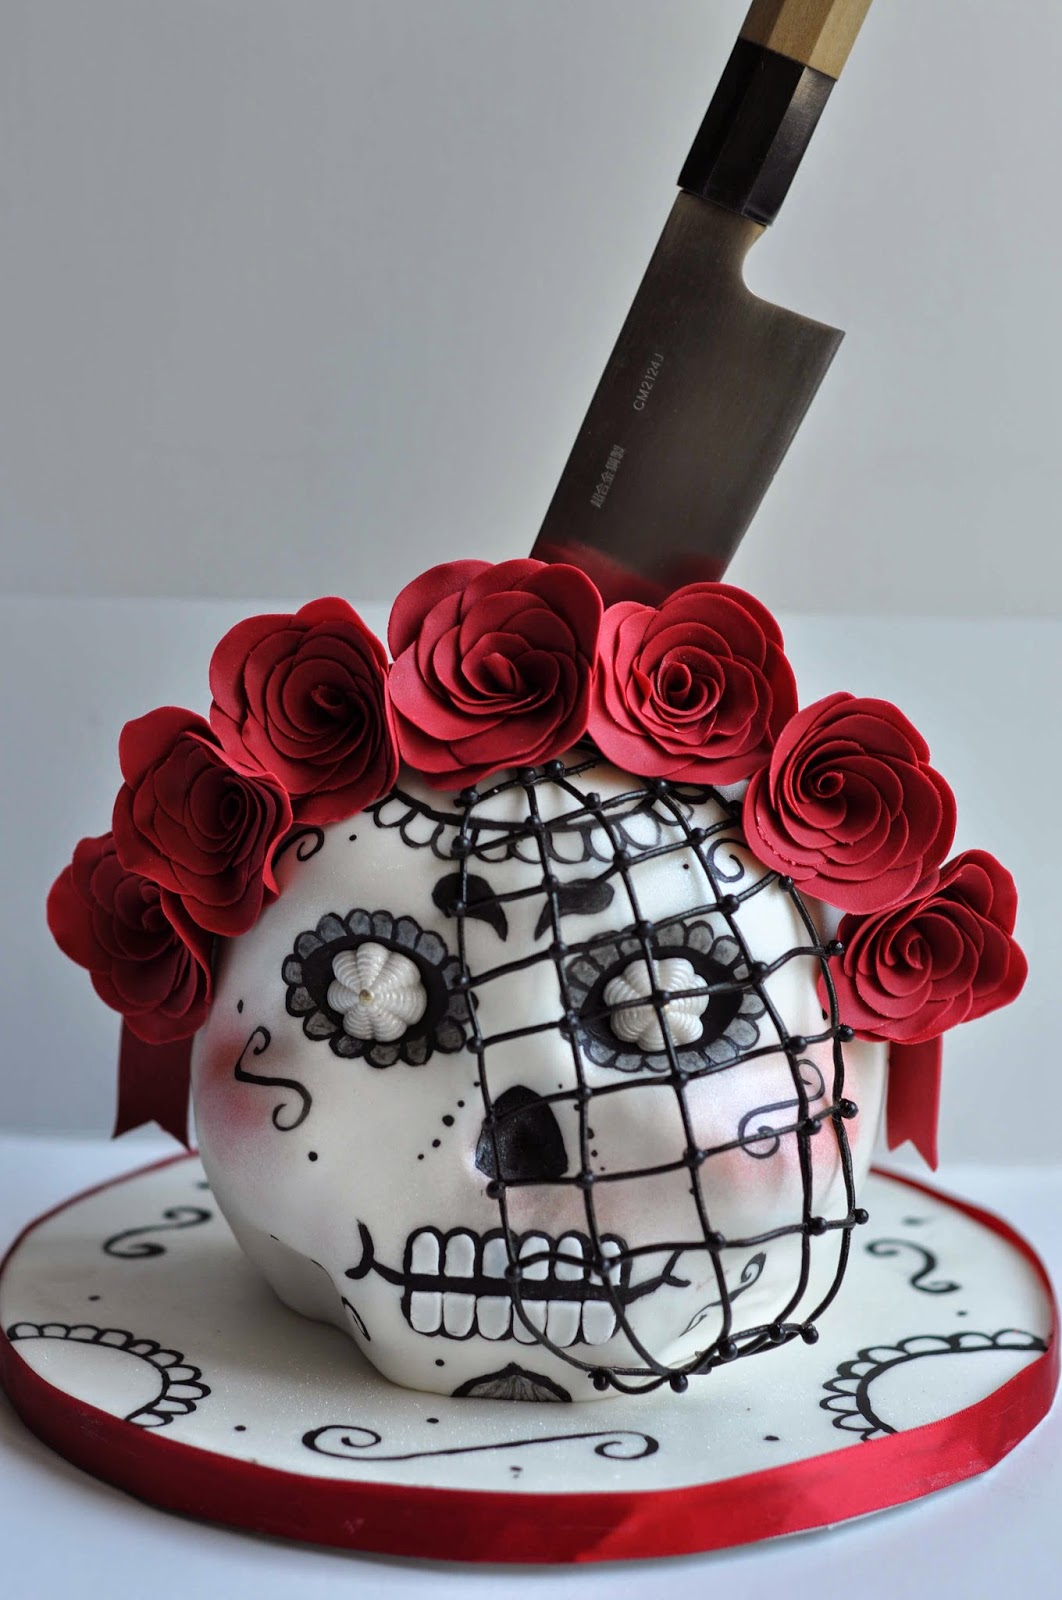 Backen Baking Cake Design Torten dekorieren Decorating Sculpted Cake Geformte Kuchen Day of the Dead Skull Schädel Tag der Toten Mexico